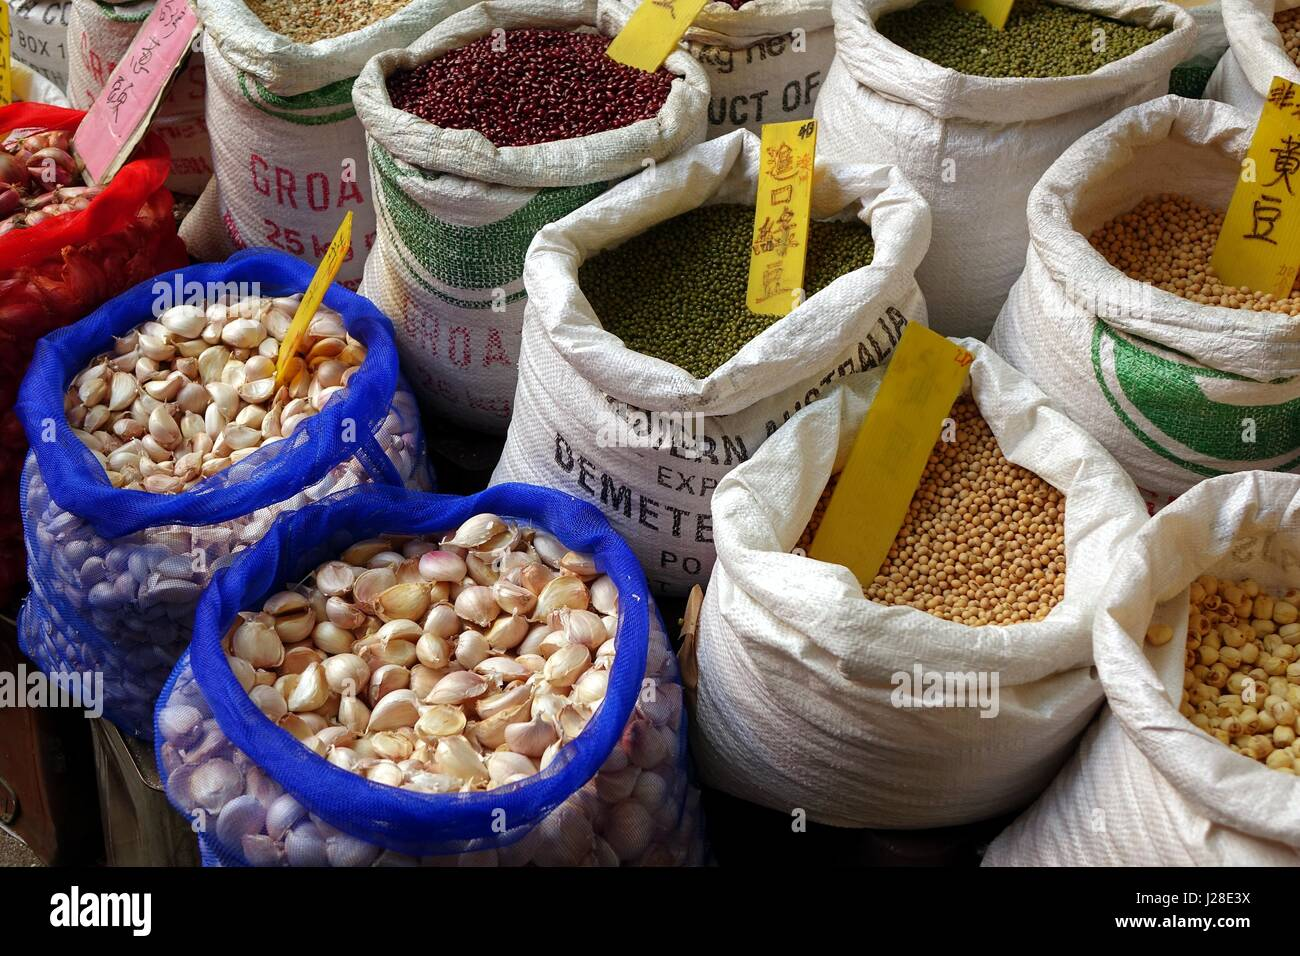 KAOHSIUNG, TAIWAN -- MAY 31, 2014: A store at the famous Zongjie dry goods market sells beans, grains, nuts and - Stock Image